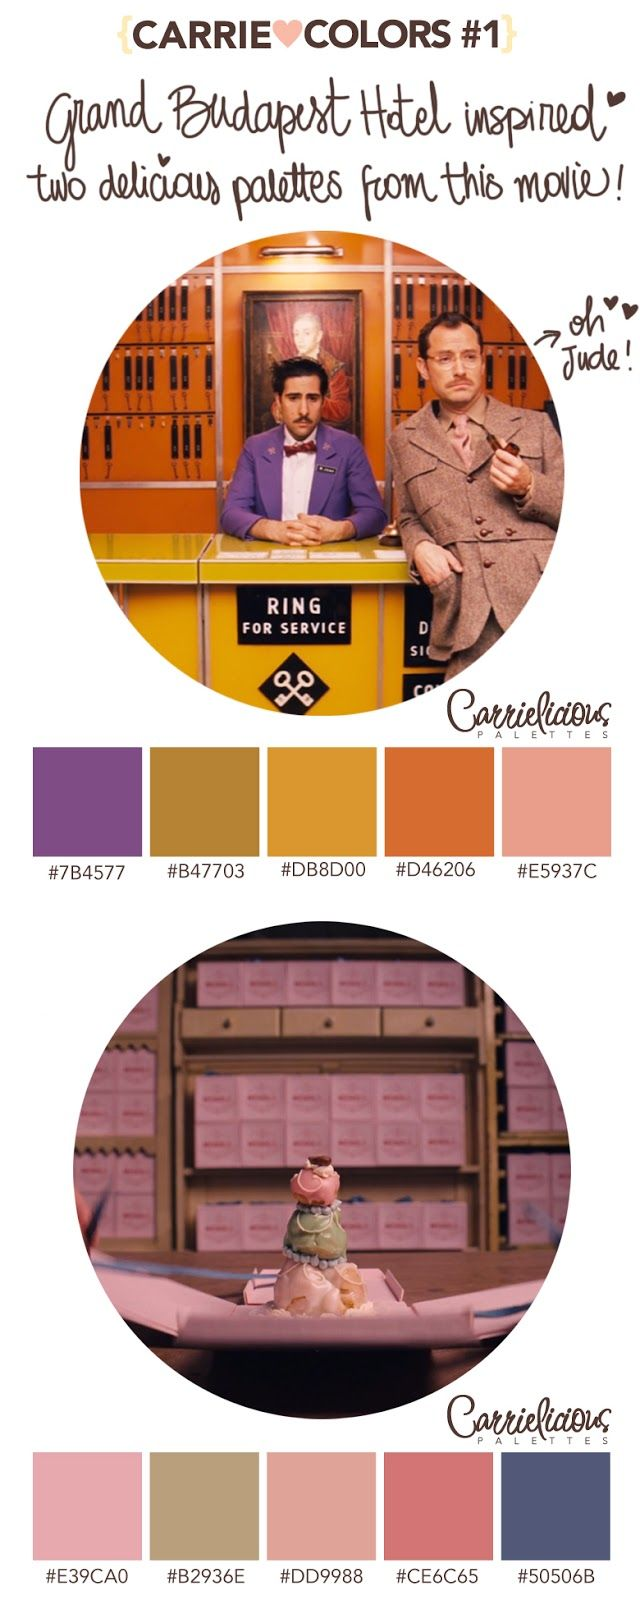 Carrielicious: CARRIE [loves] COLORS #1: Grand Budapest Hotel